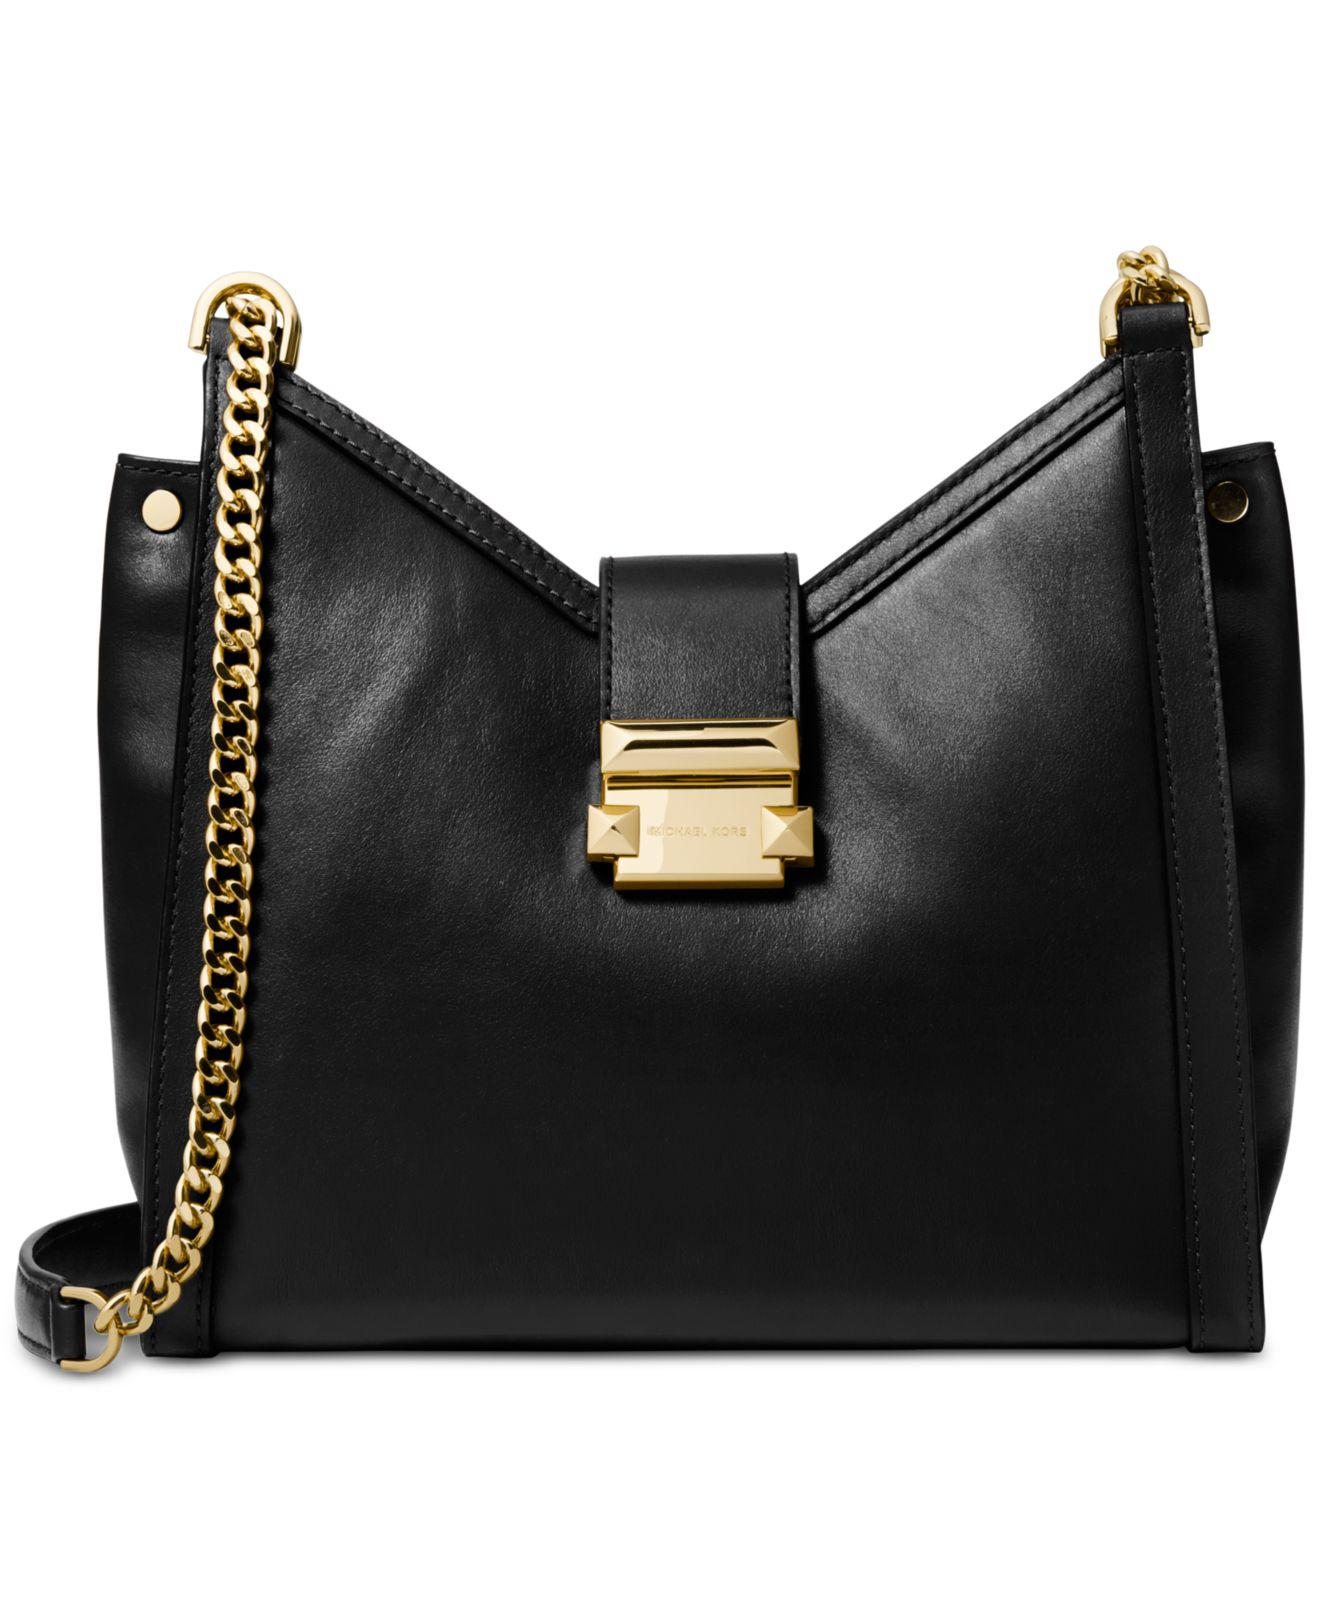 bb1622deef33d Michael Kors. Women s Black Michael Whitney Polished Leather Chain Shoulder  Tote